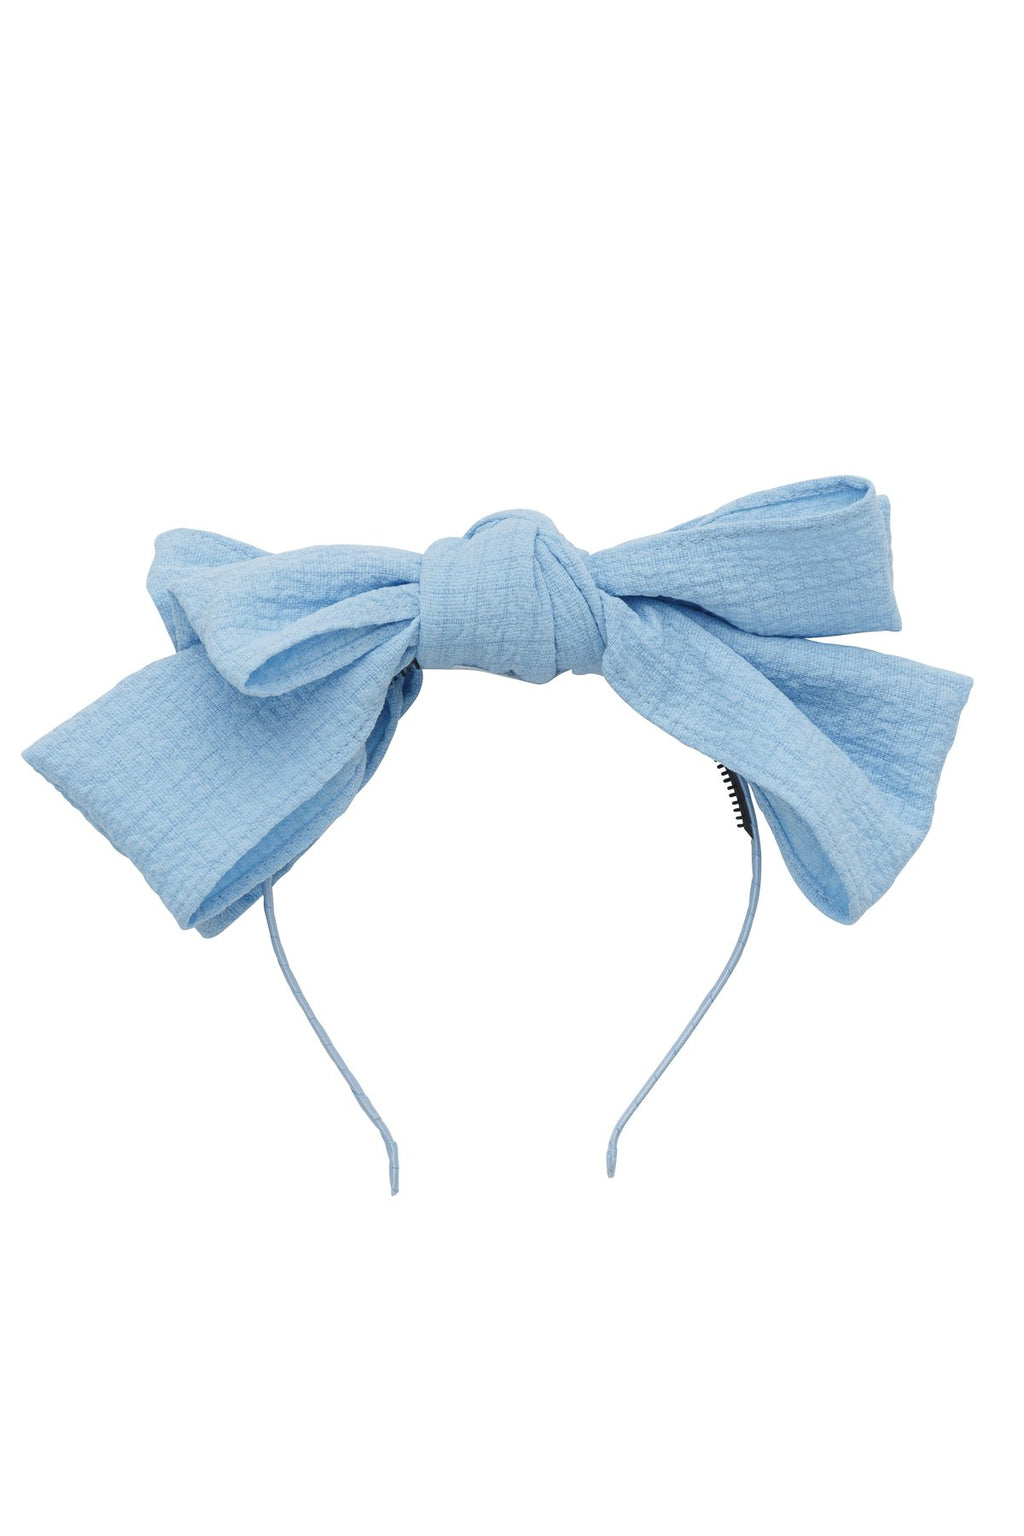 Floppy Muslin Headband - Sky Blue - PROJECT 6, modest fashion